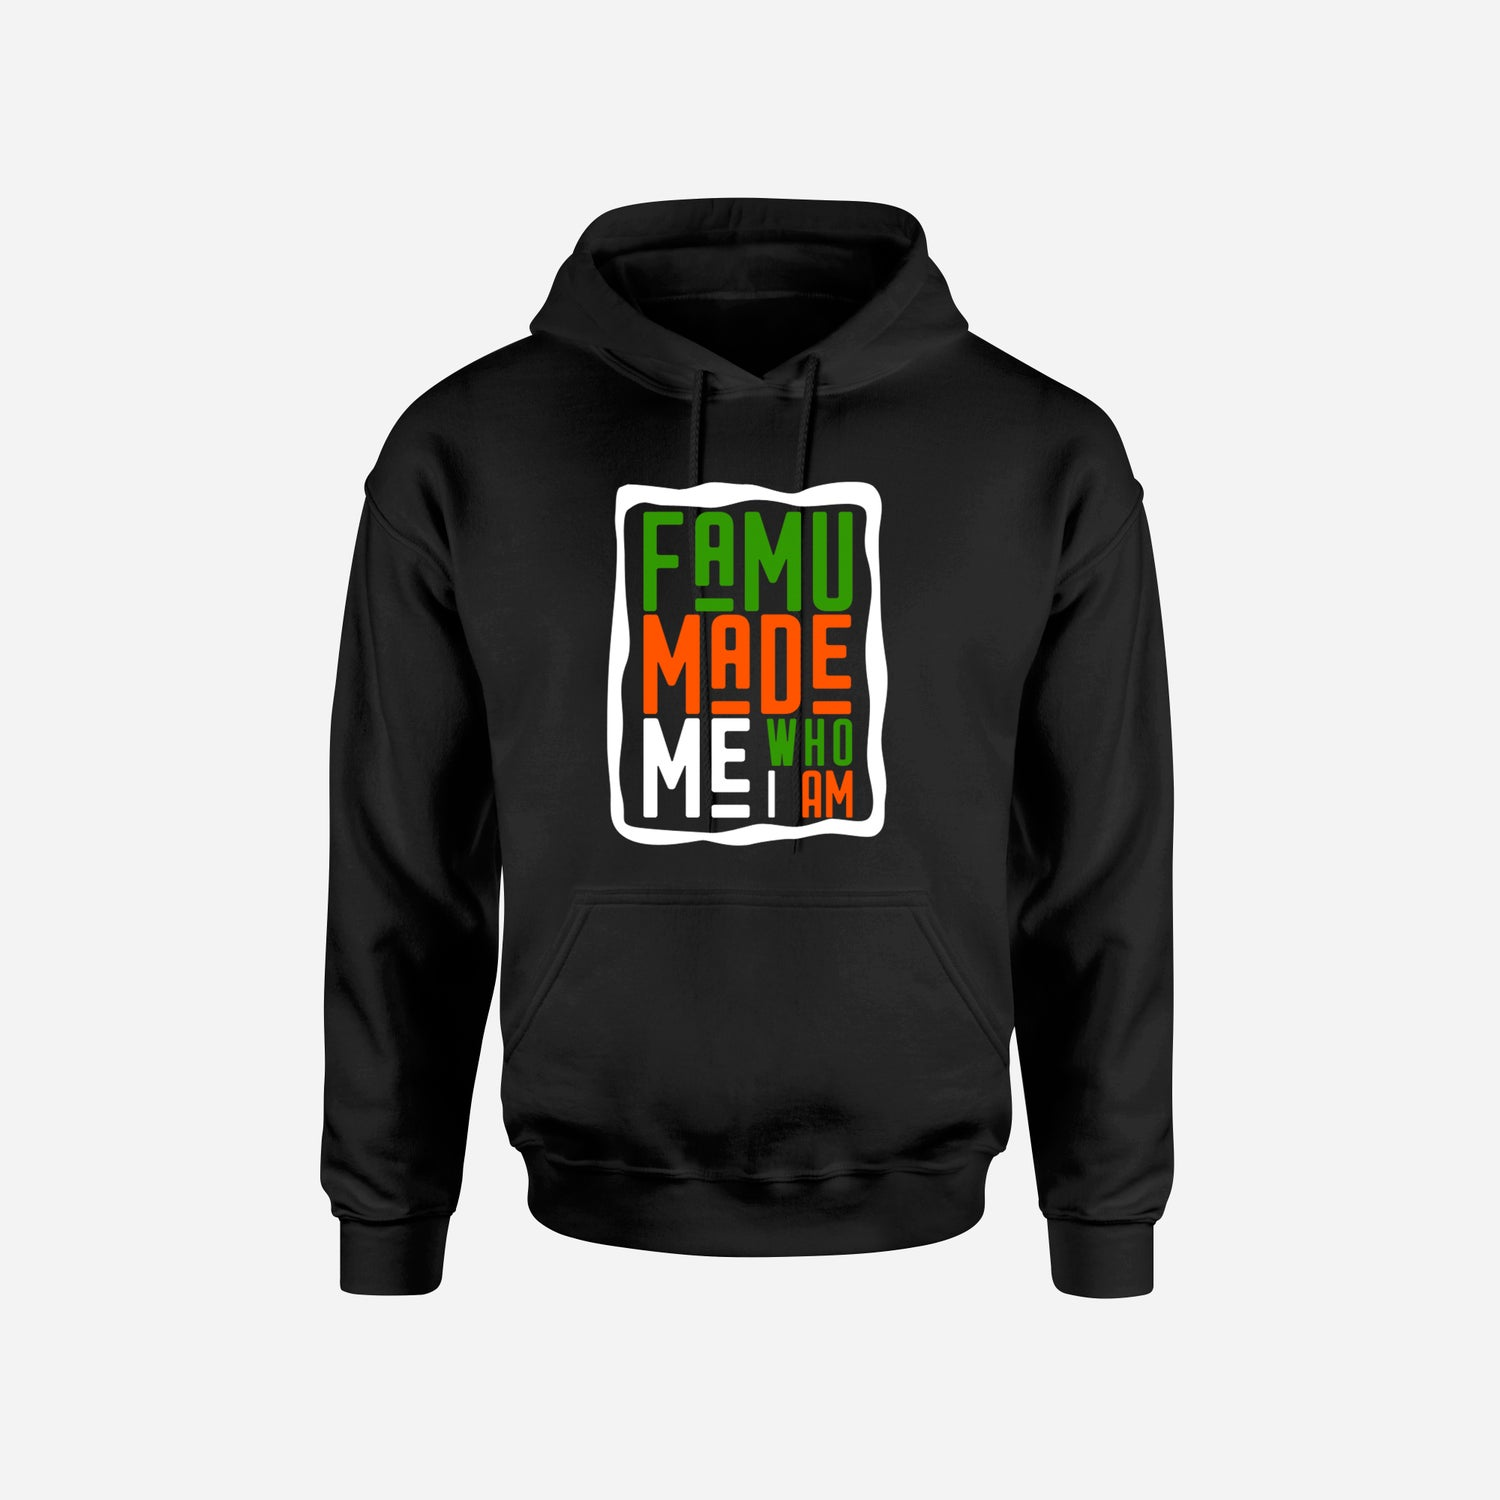 Image of FAMU MADE HOODIES